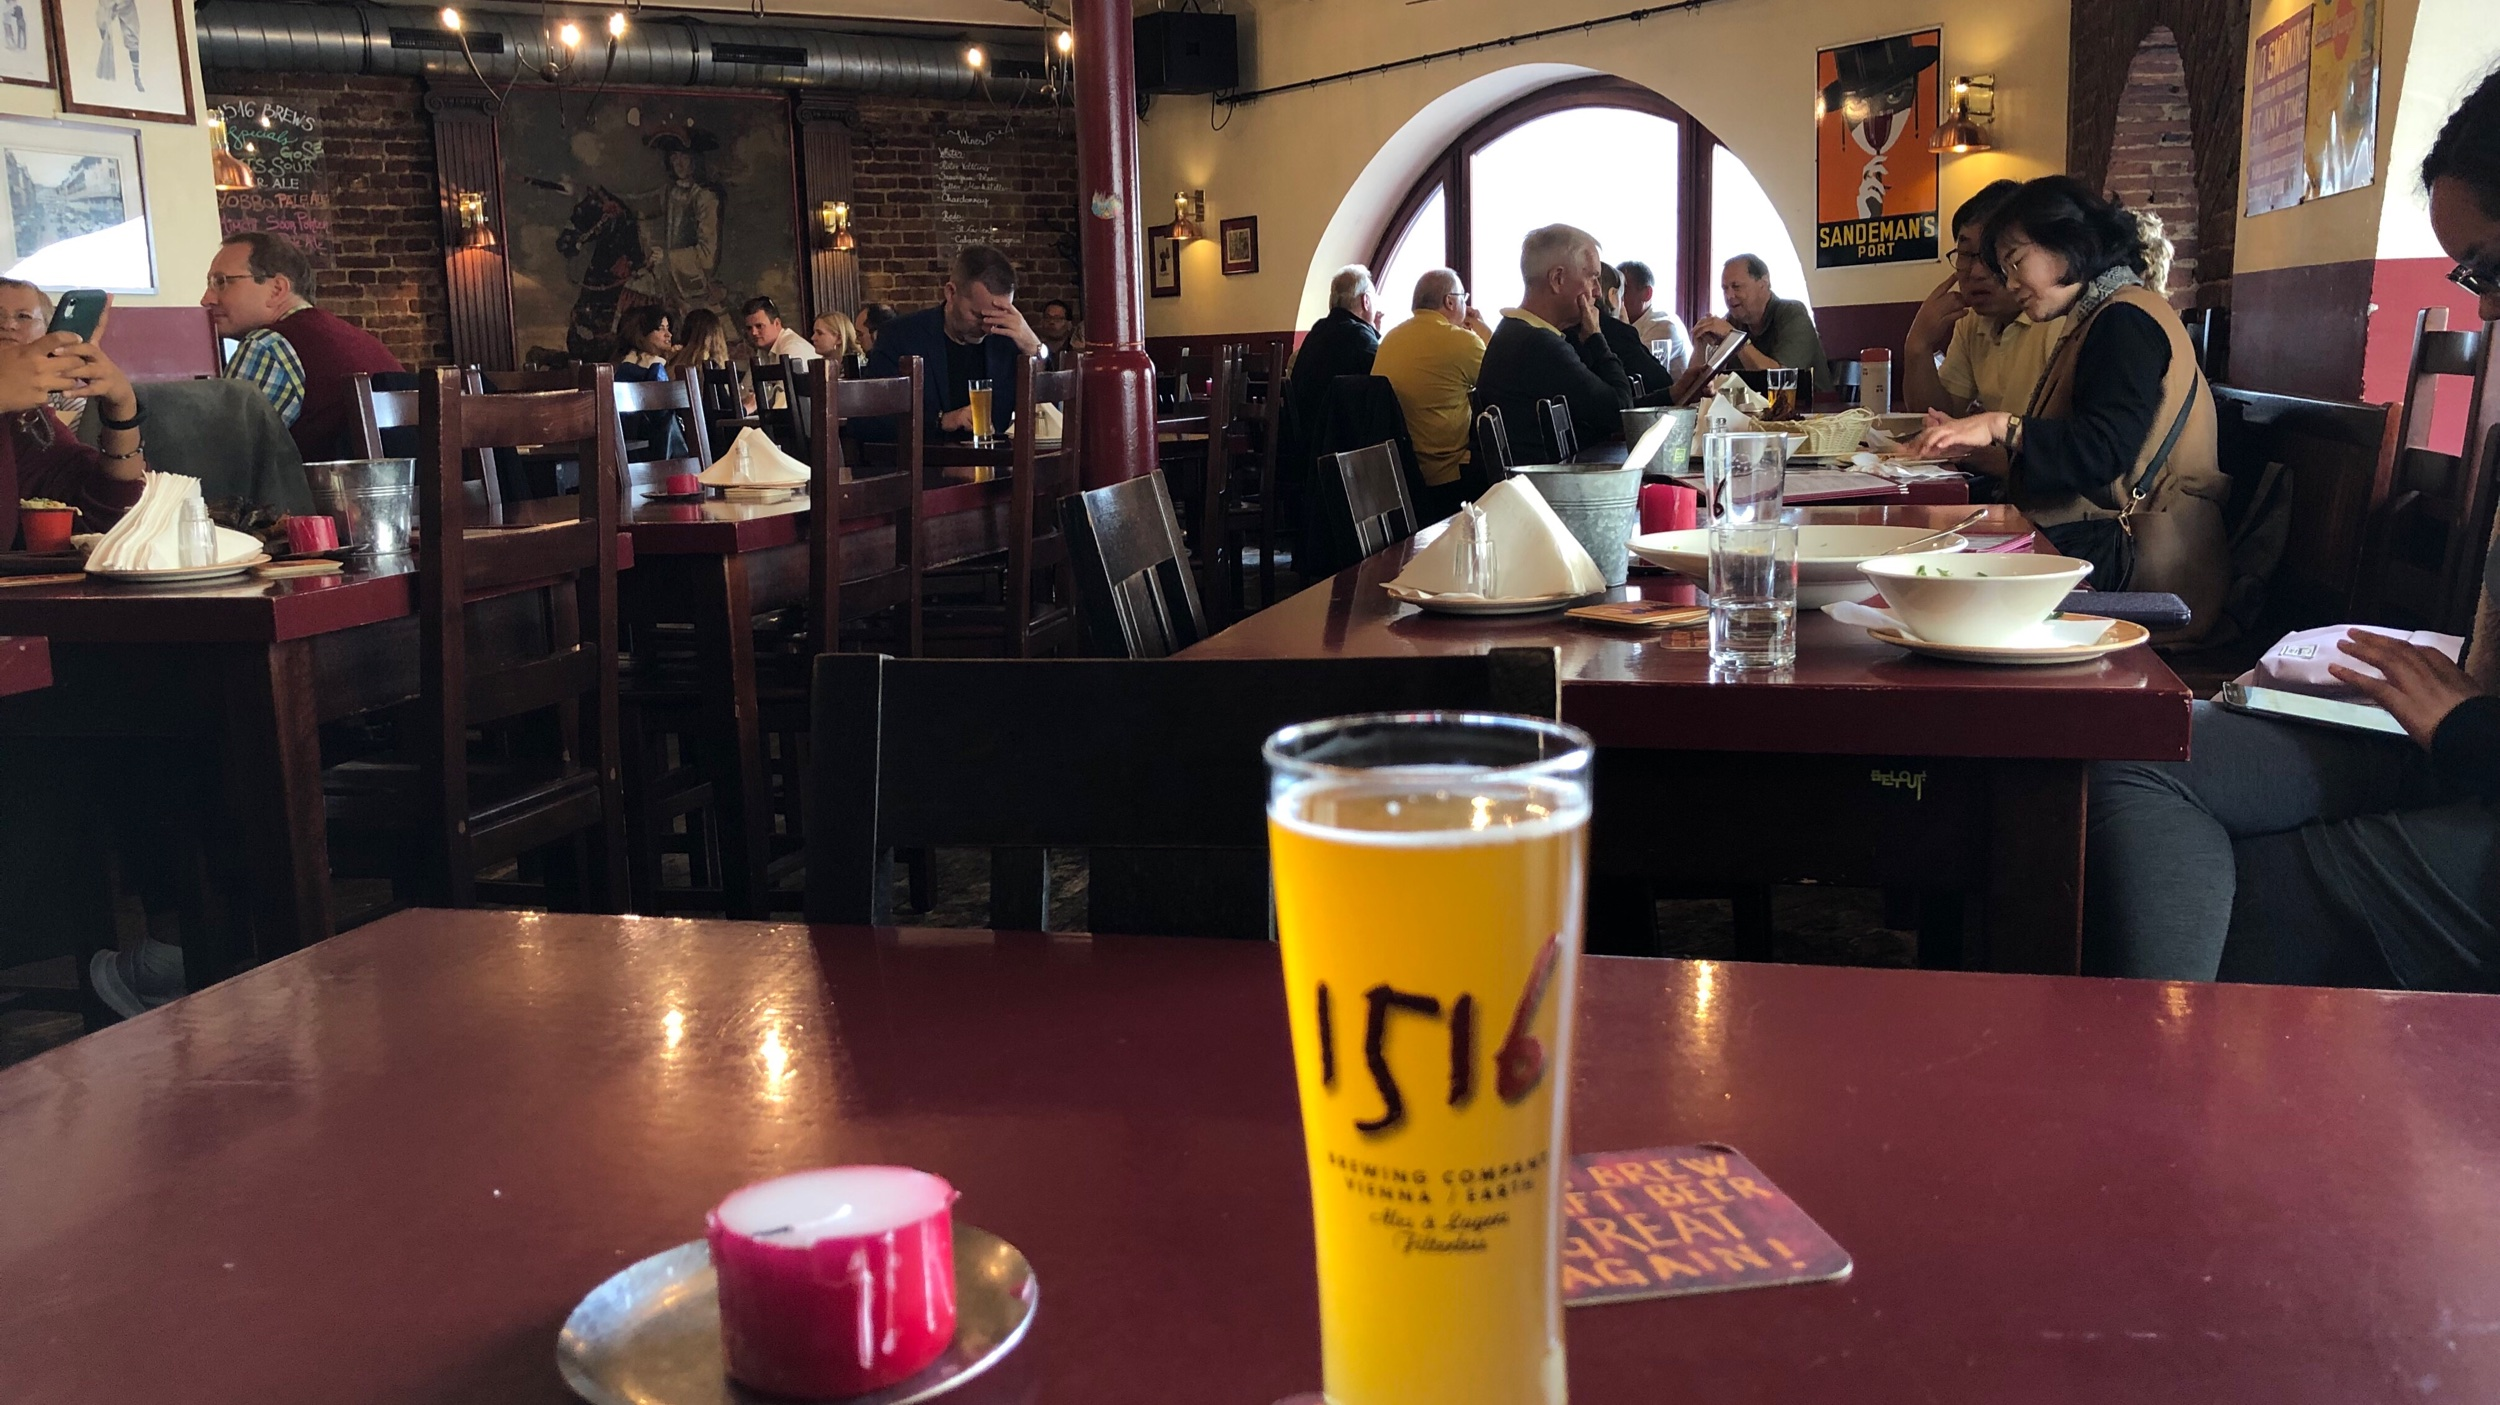 1516 Brewing, in the heart of the old town